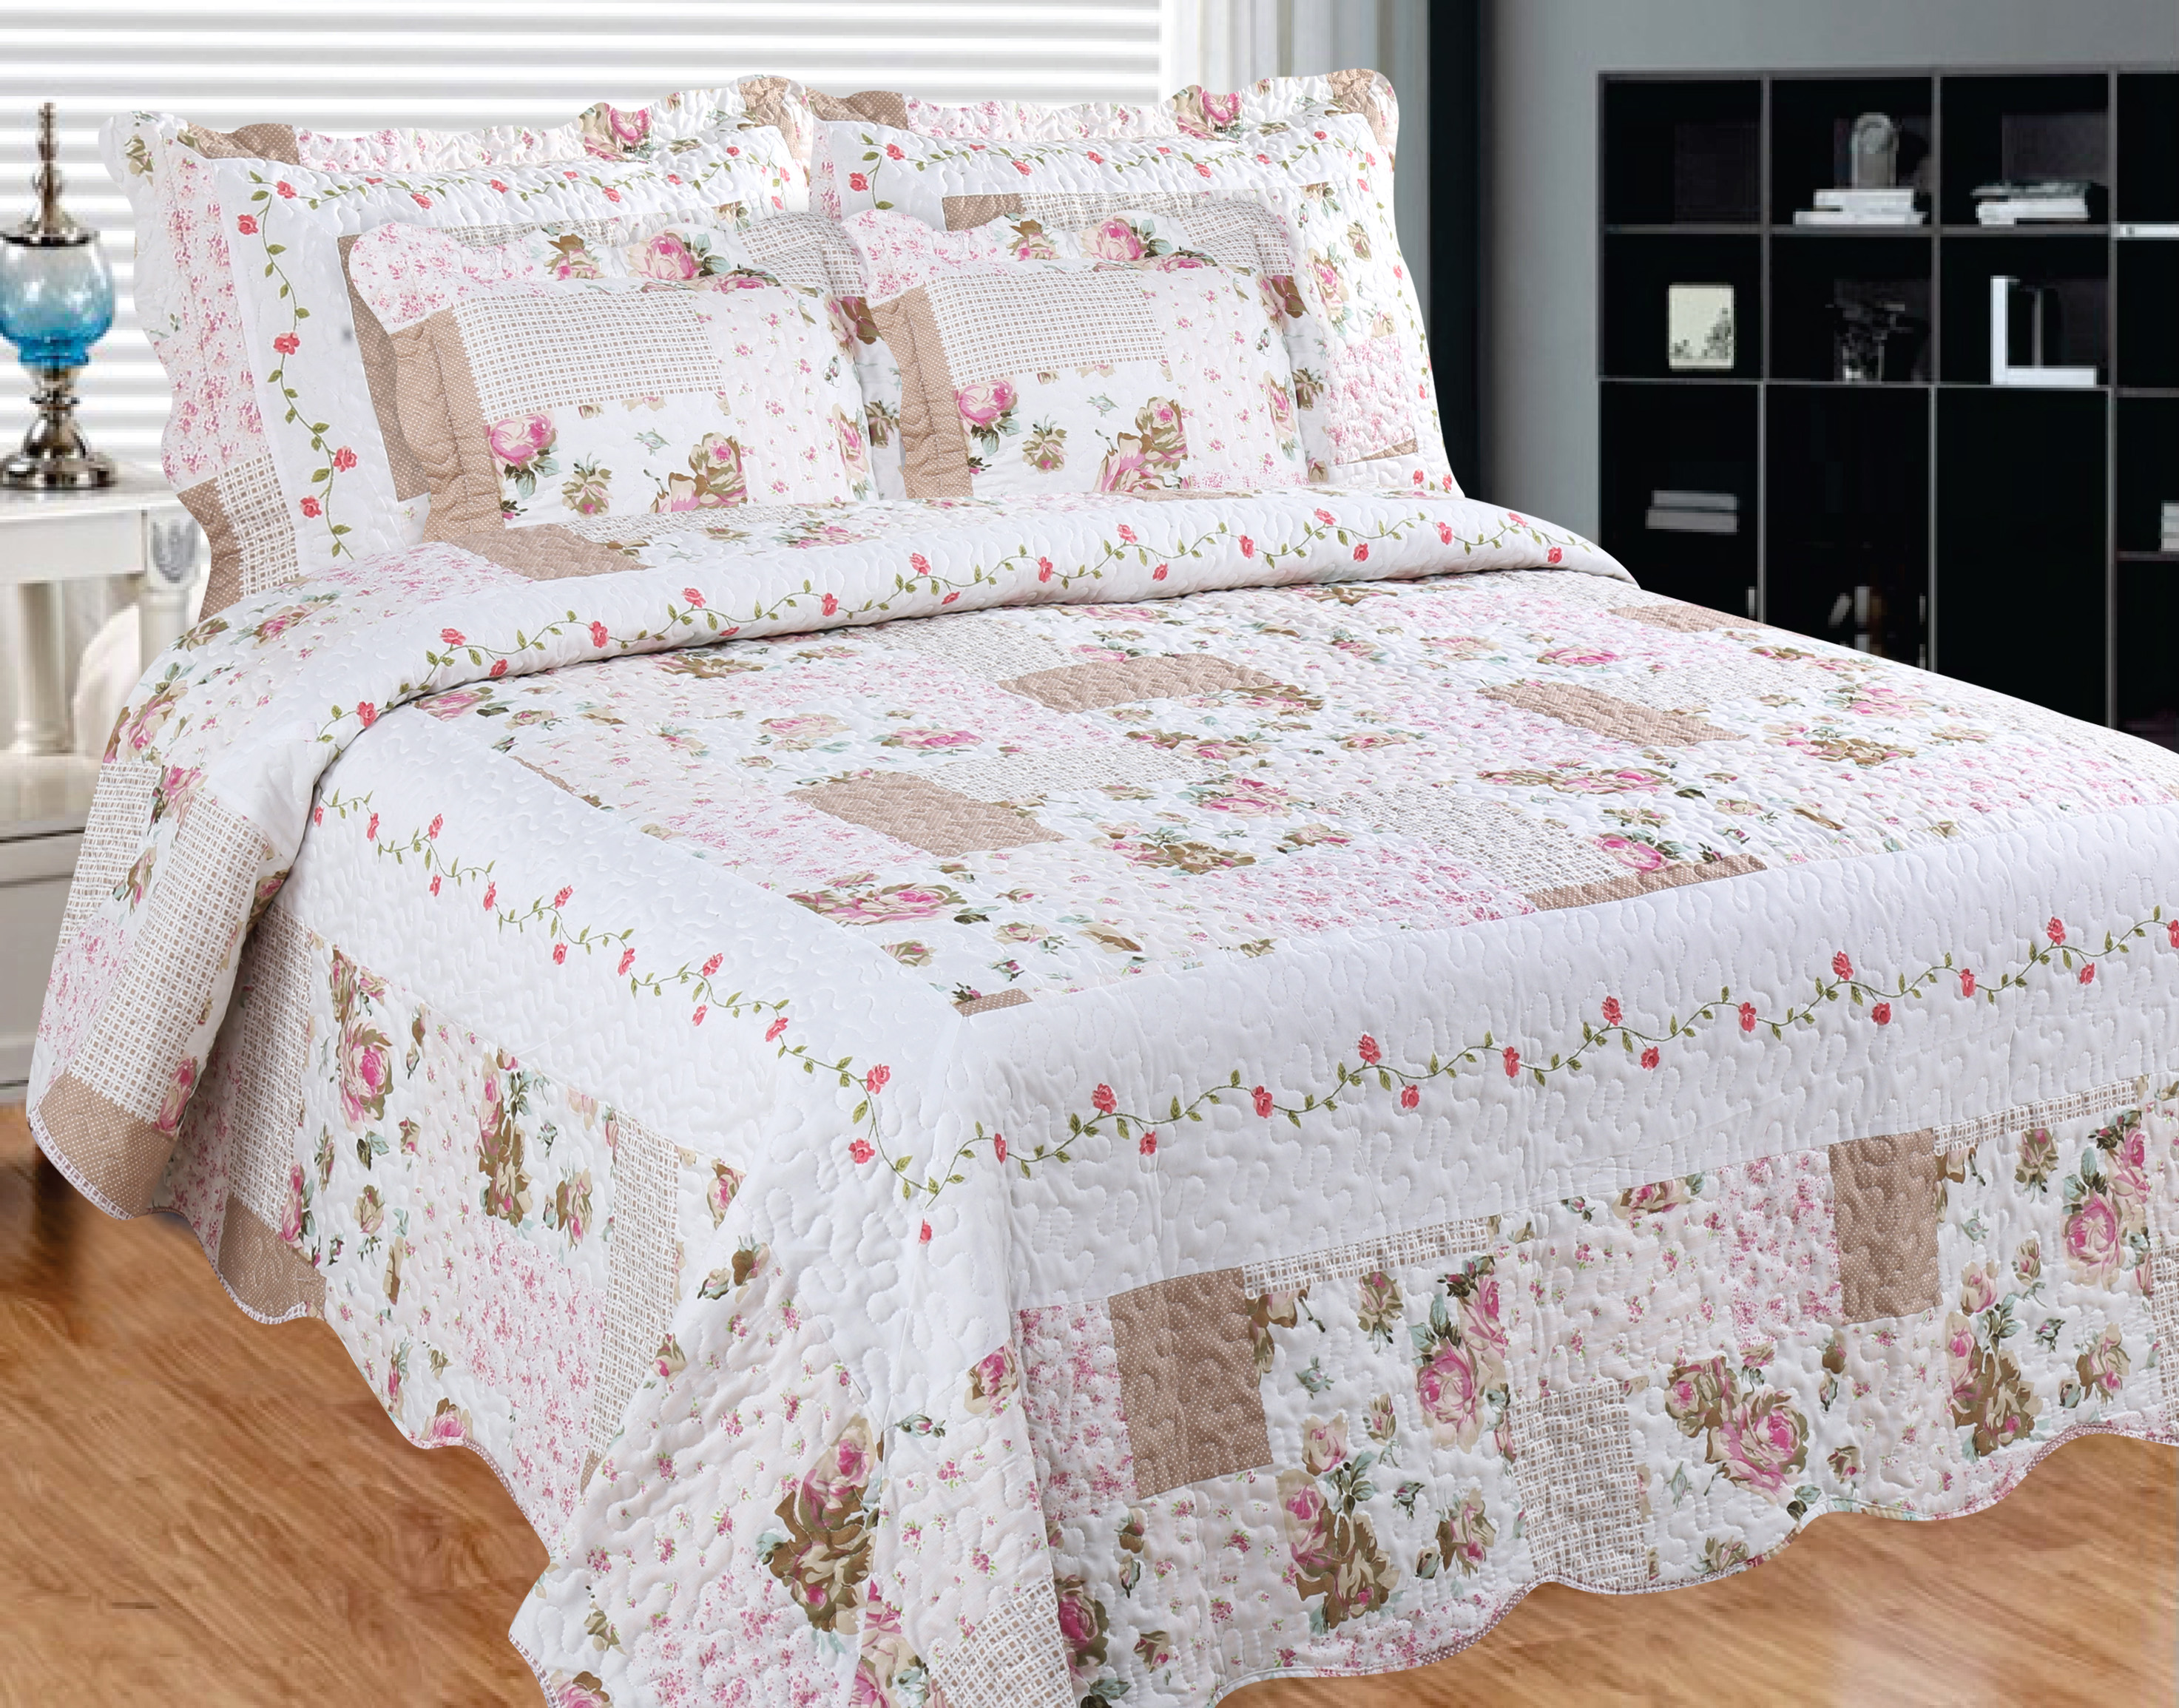 Camellia Main Quilt with Pillow Shams by Patch Magic